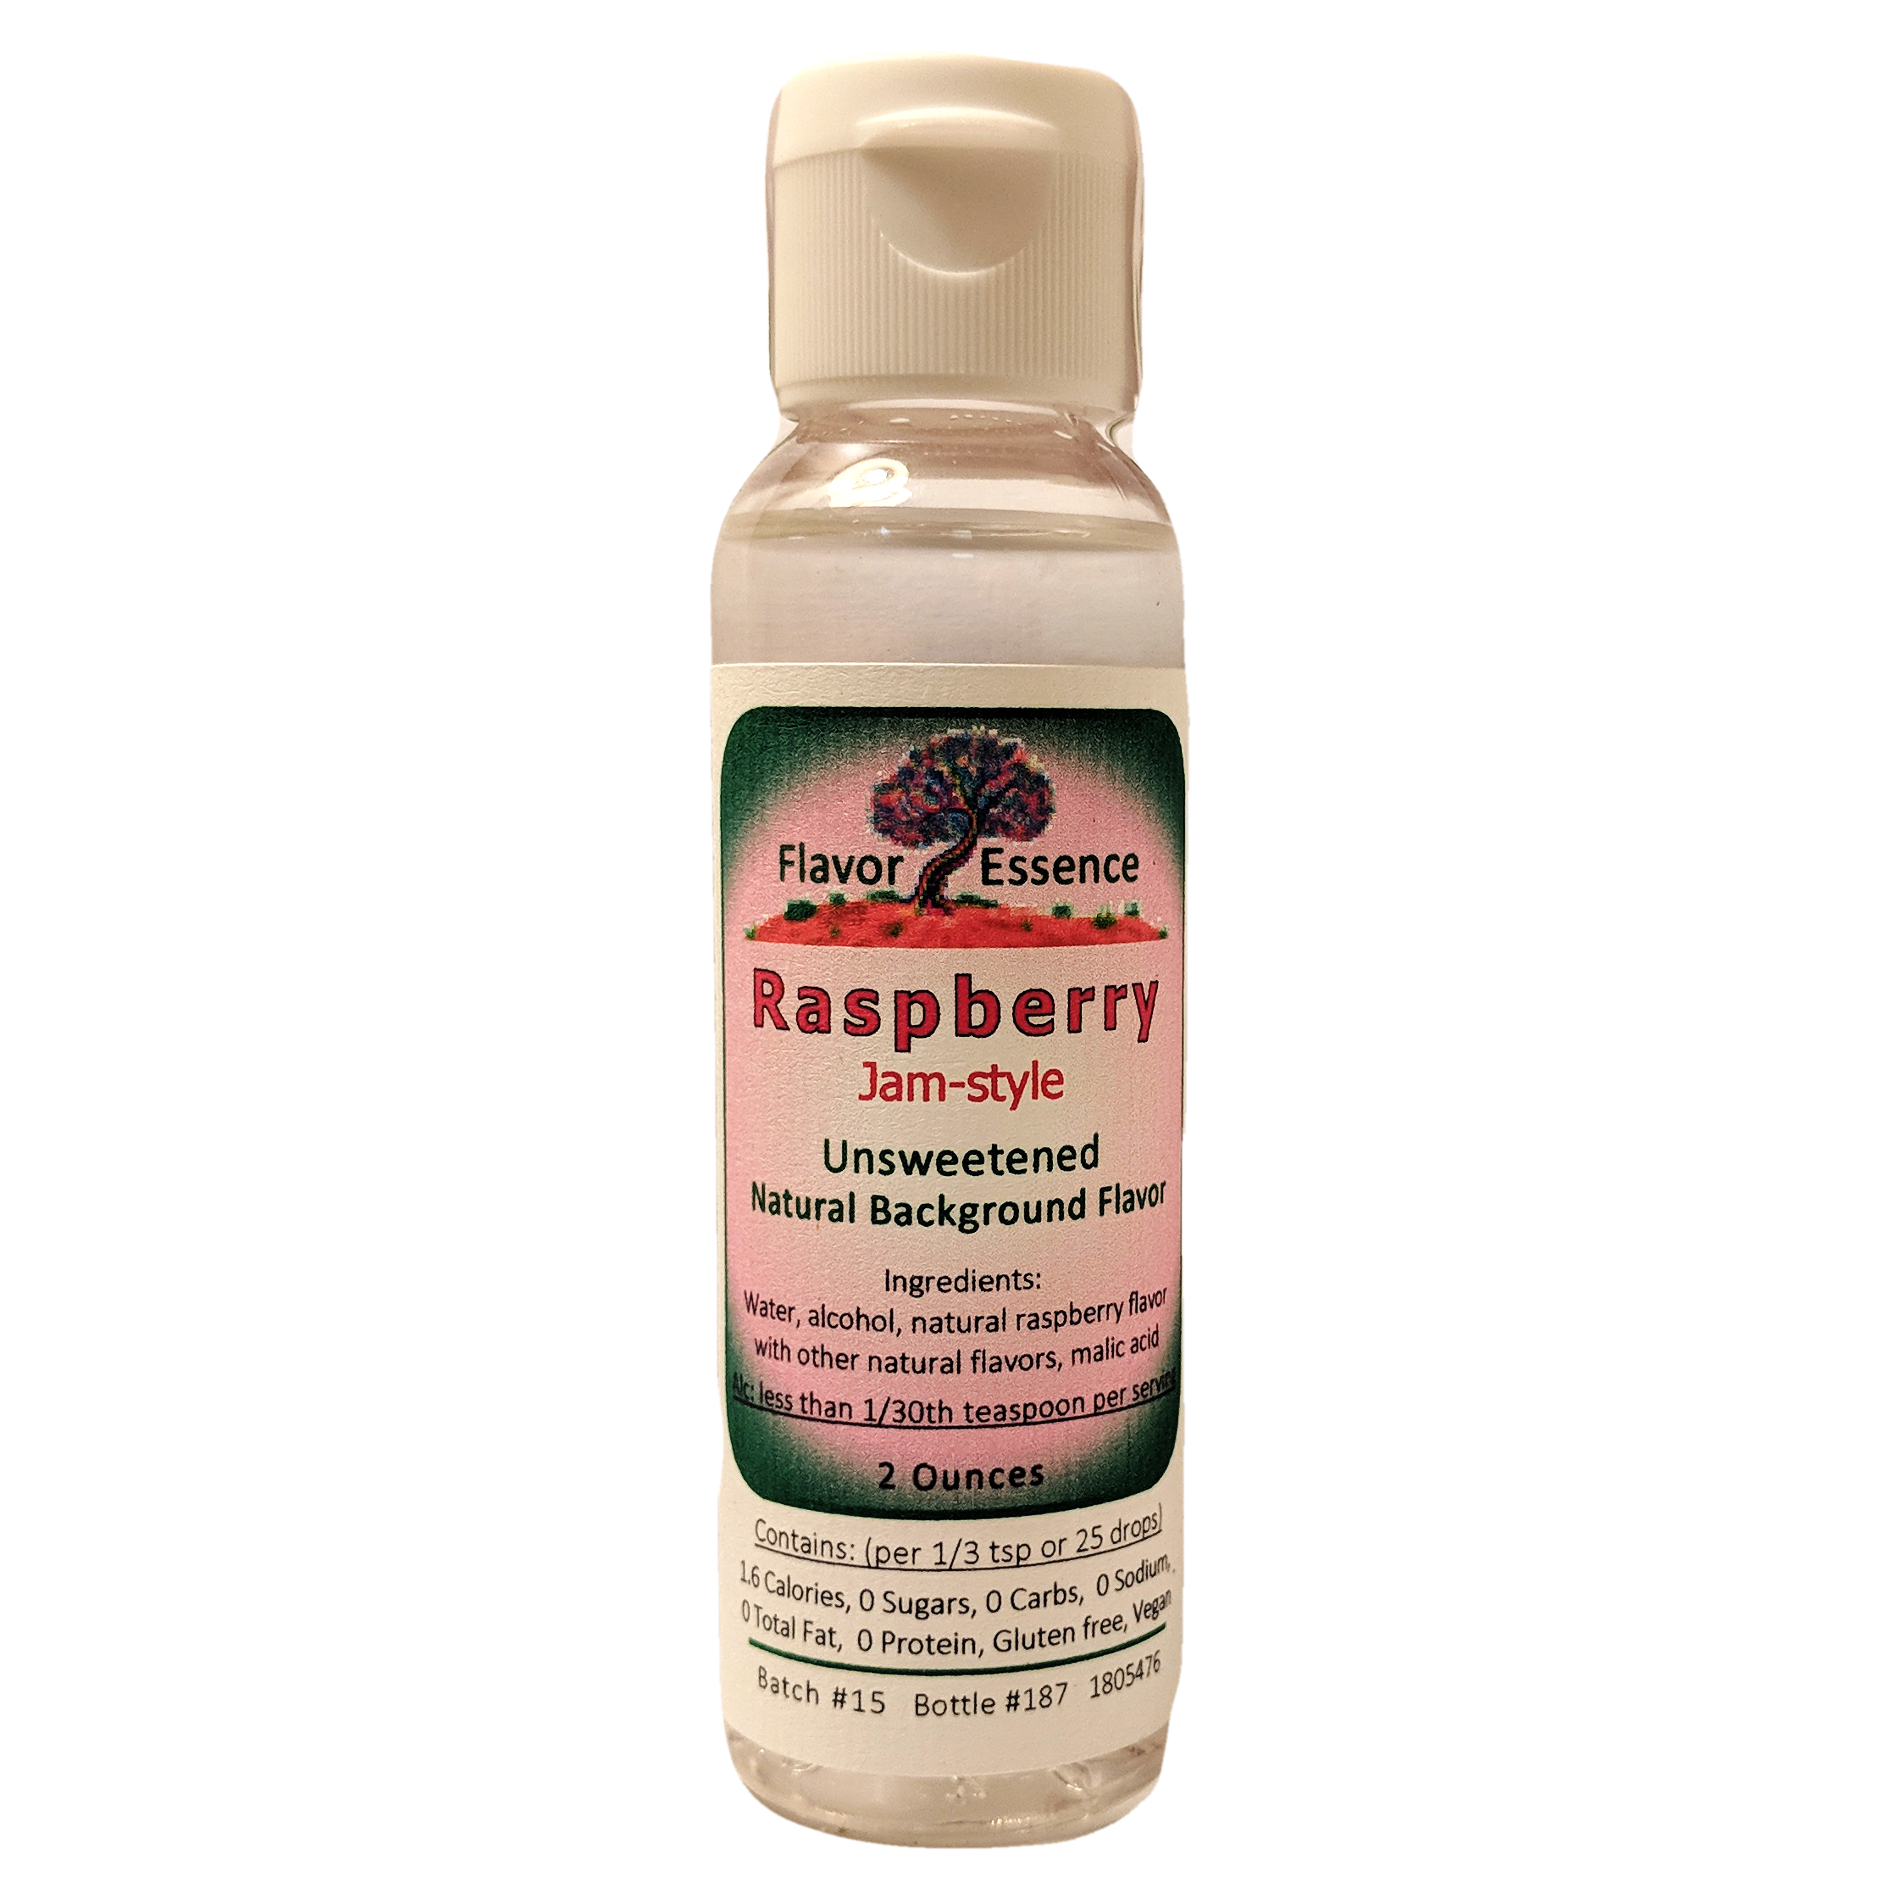 RASPBERRY (Jam-Style) Unsweetened Natural Flavoring RASP-